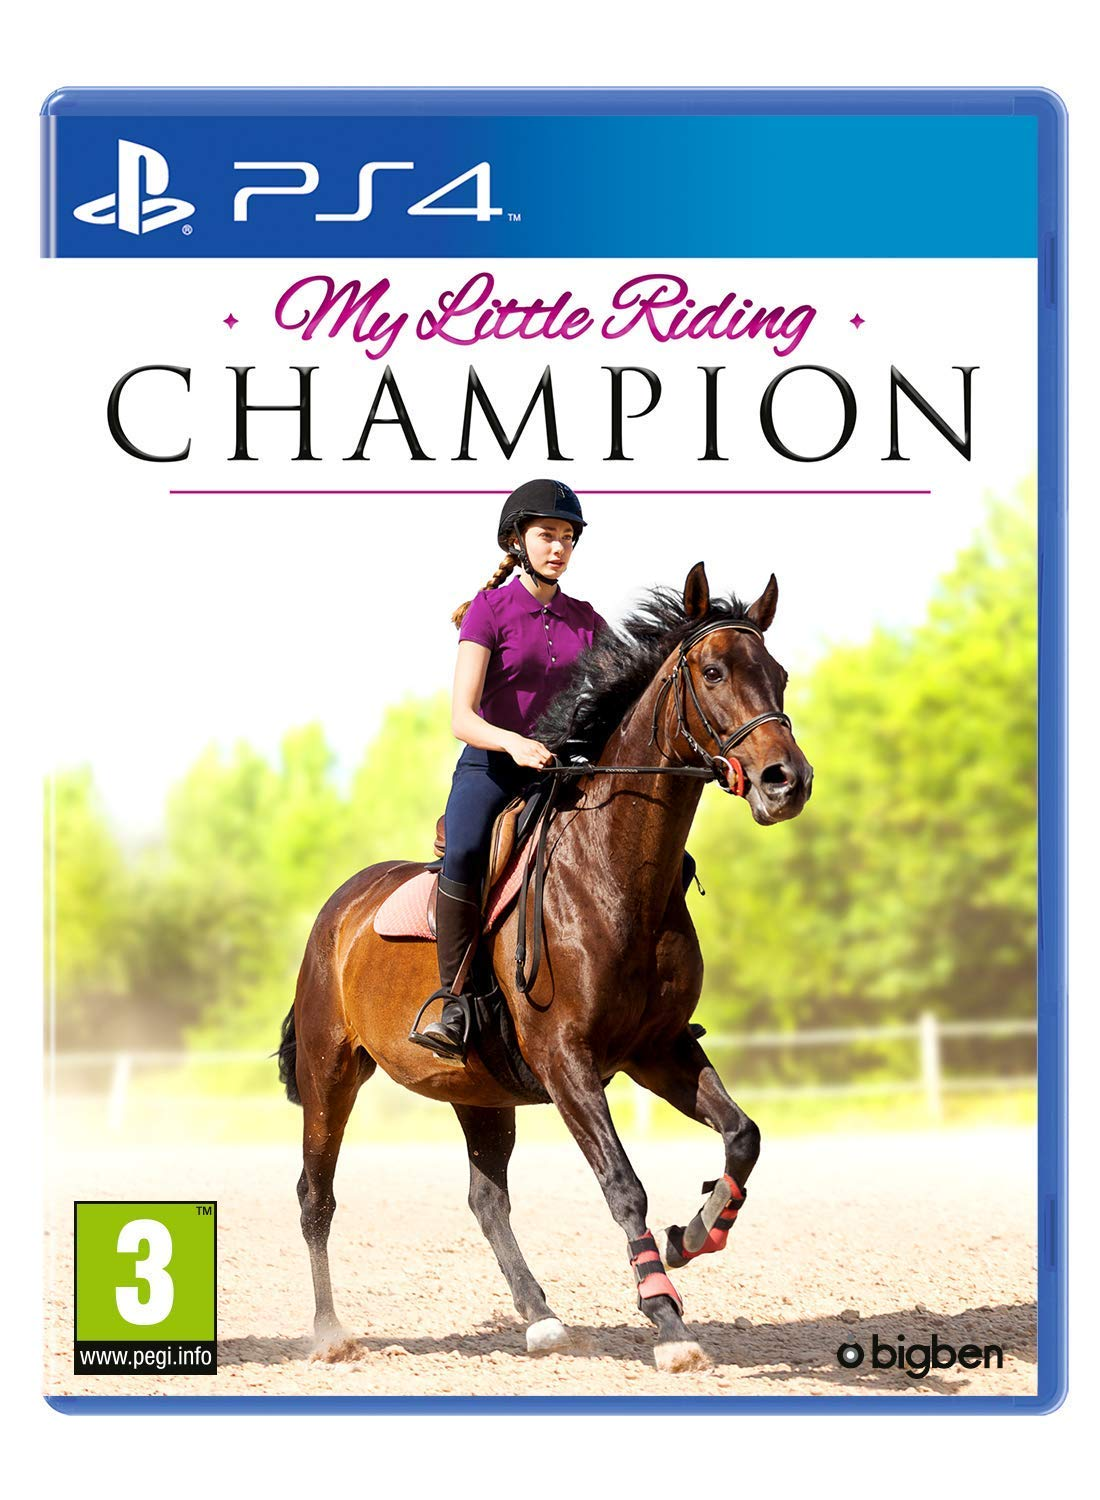 My Little Riding Champion PS4, PS4, DVDMEGASTORE, DVDMEGASTORE